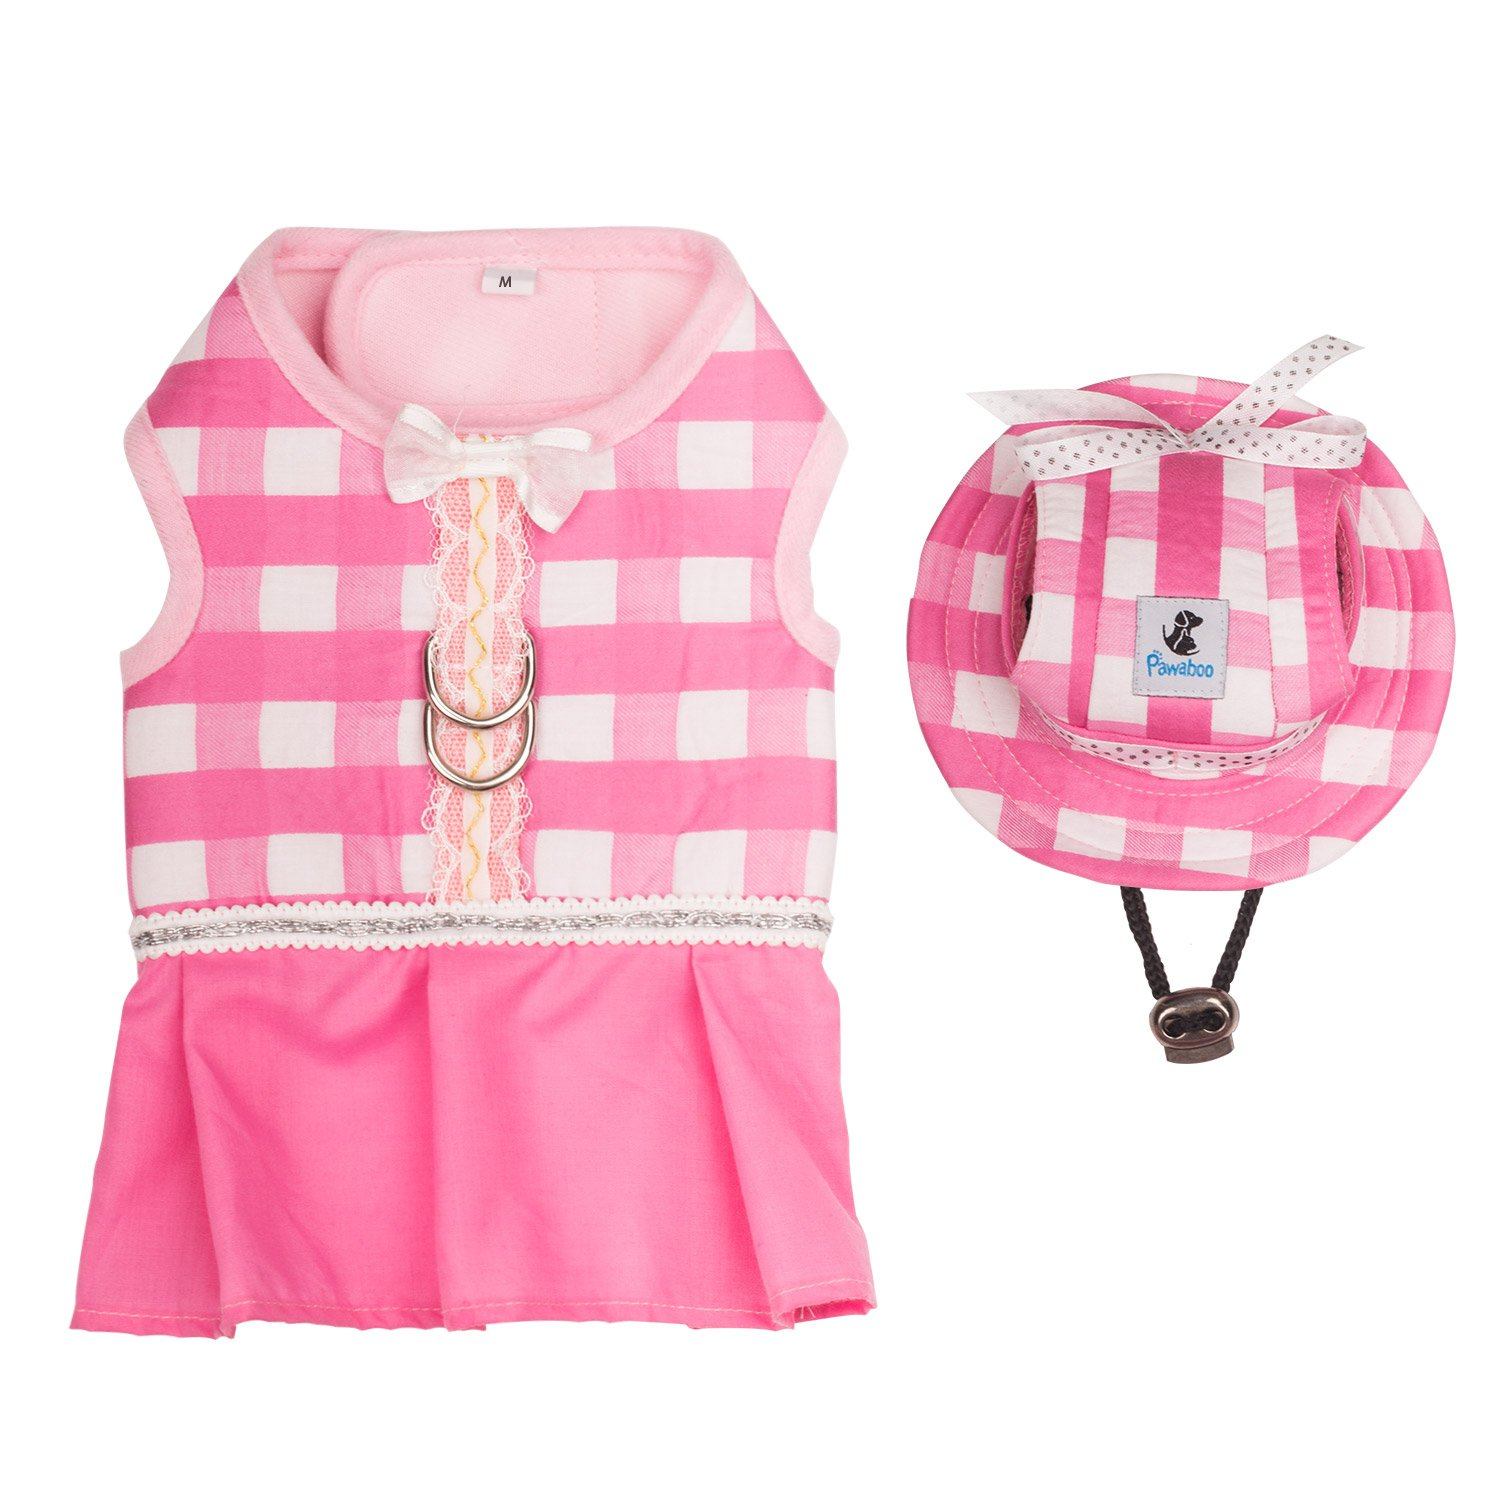 Pet clothes + hat set Pawaboo pet costume + cap skirt lace small medium-sized dog cotton cat corresponding fashionable M size Pink + White grid